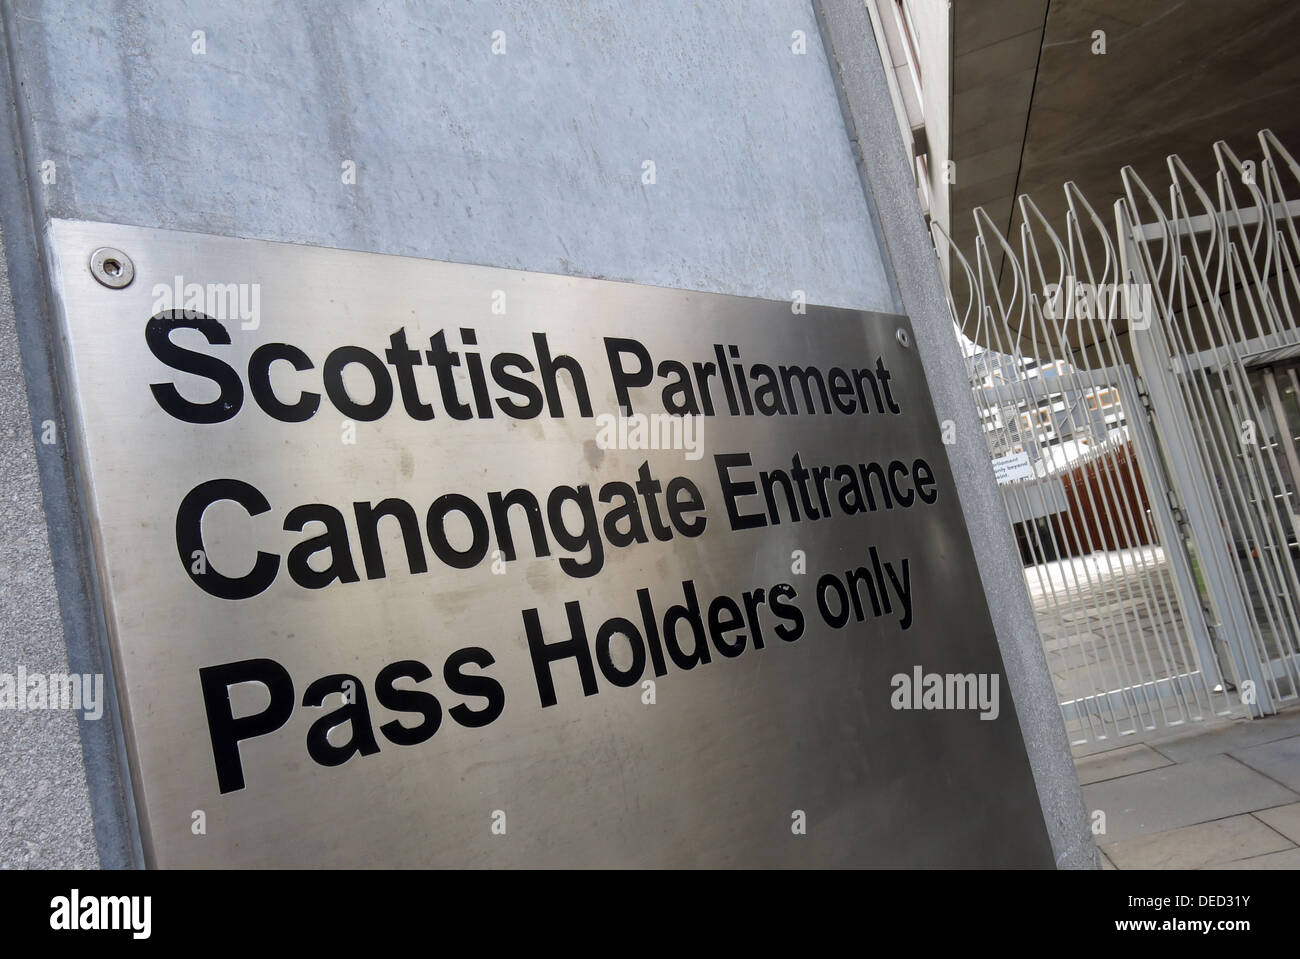 The Scottish Parliament Canongate Entrance / Government in Edinburgh which would be home of an independent Scotland - Stock Image